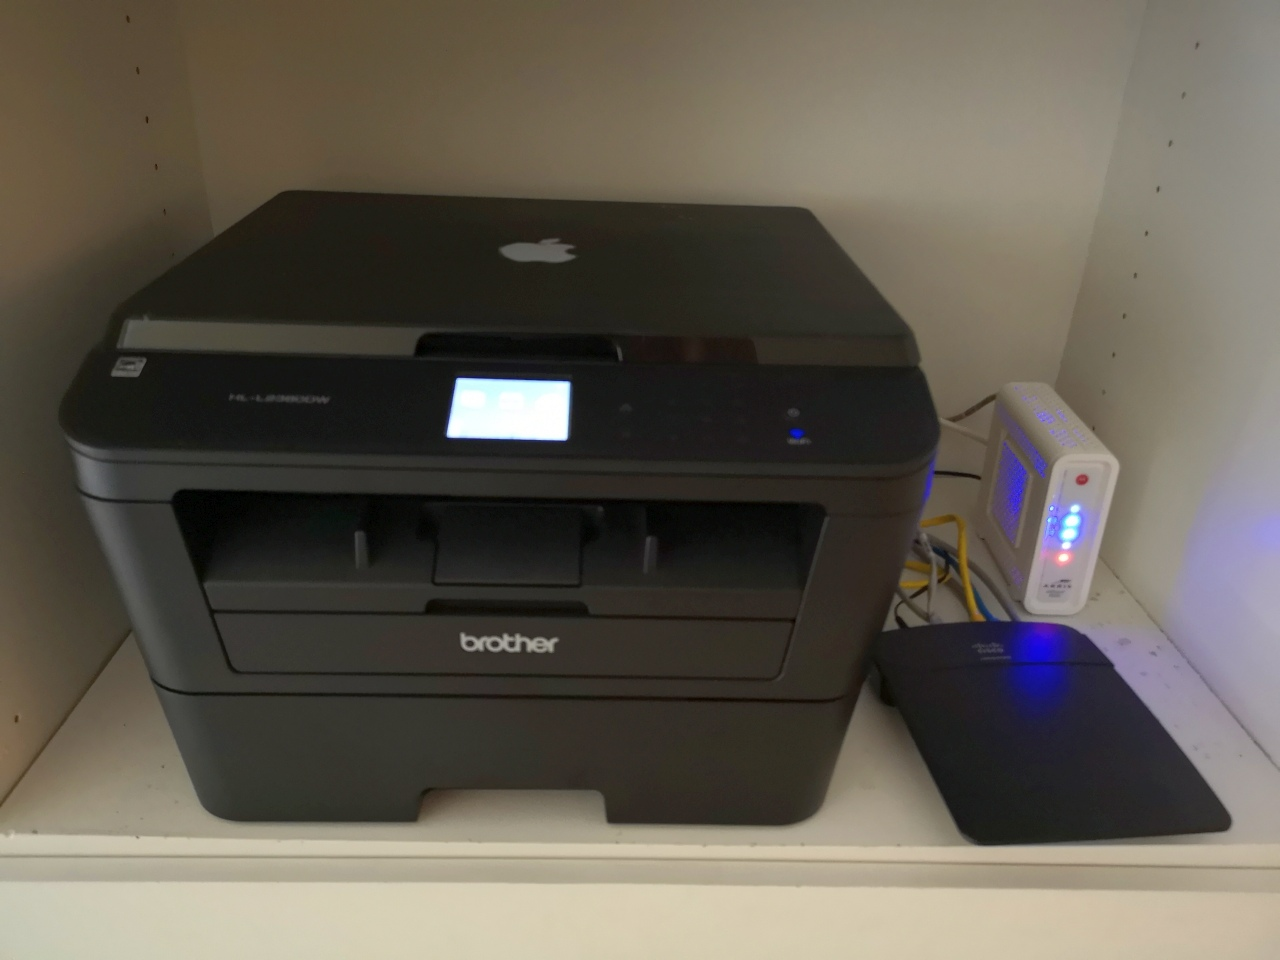 Internet WiFi and MFC printer